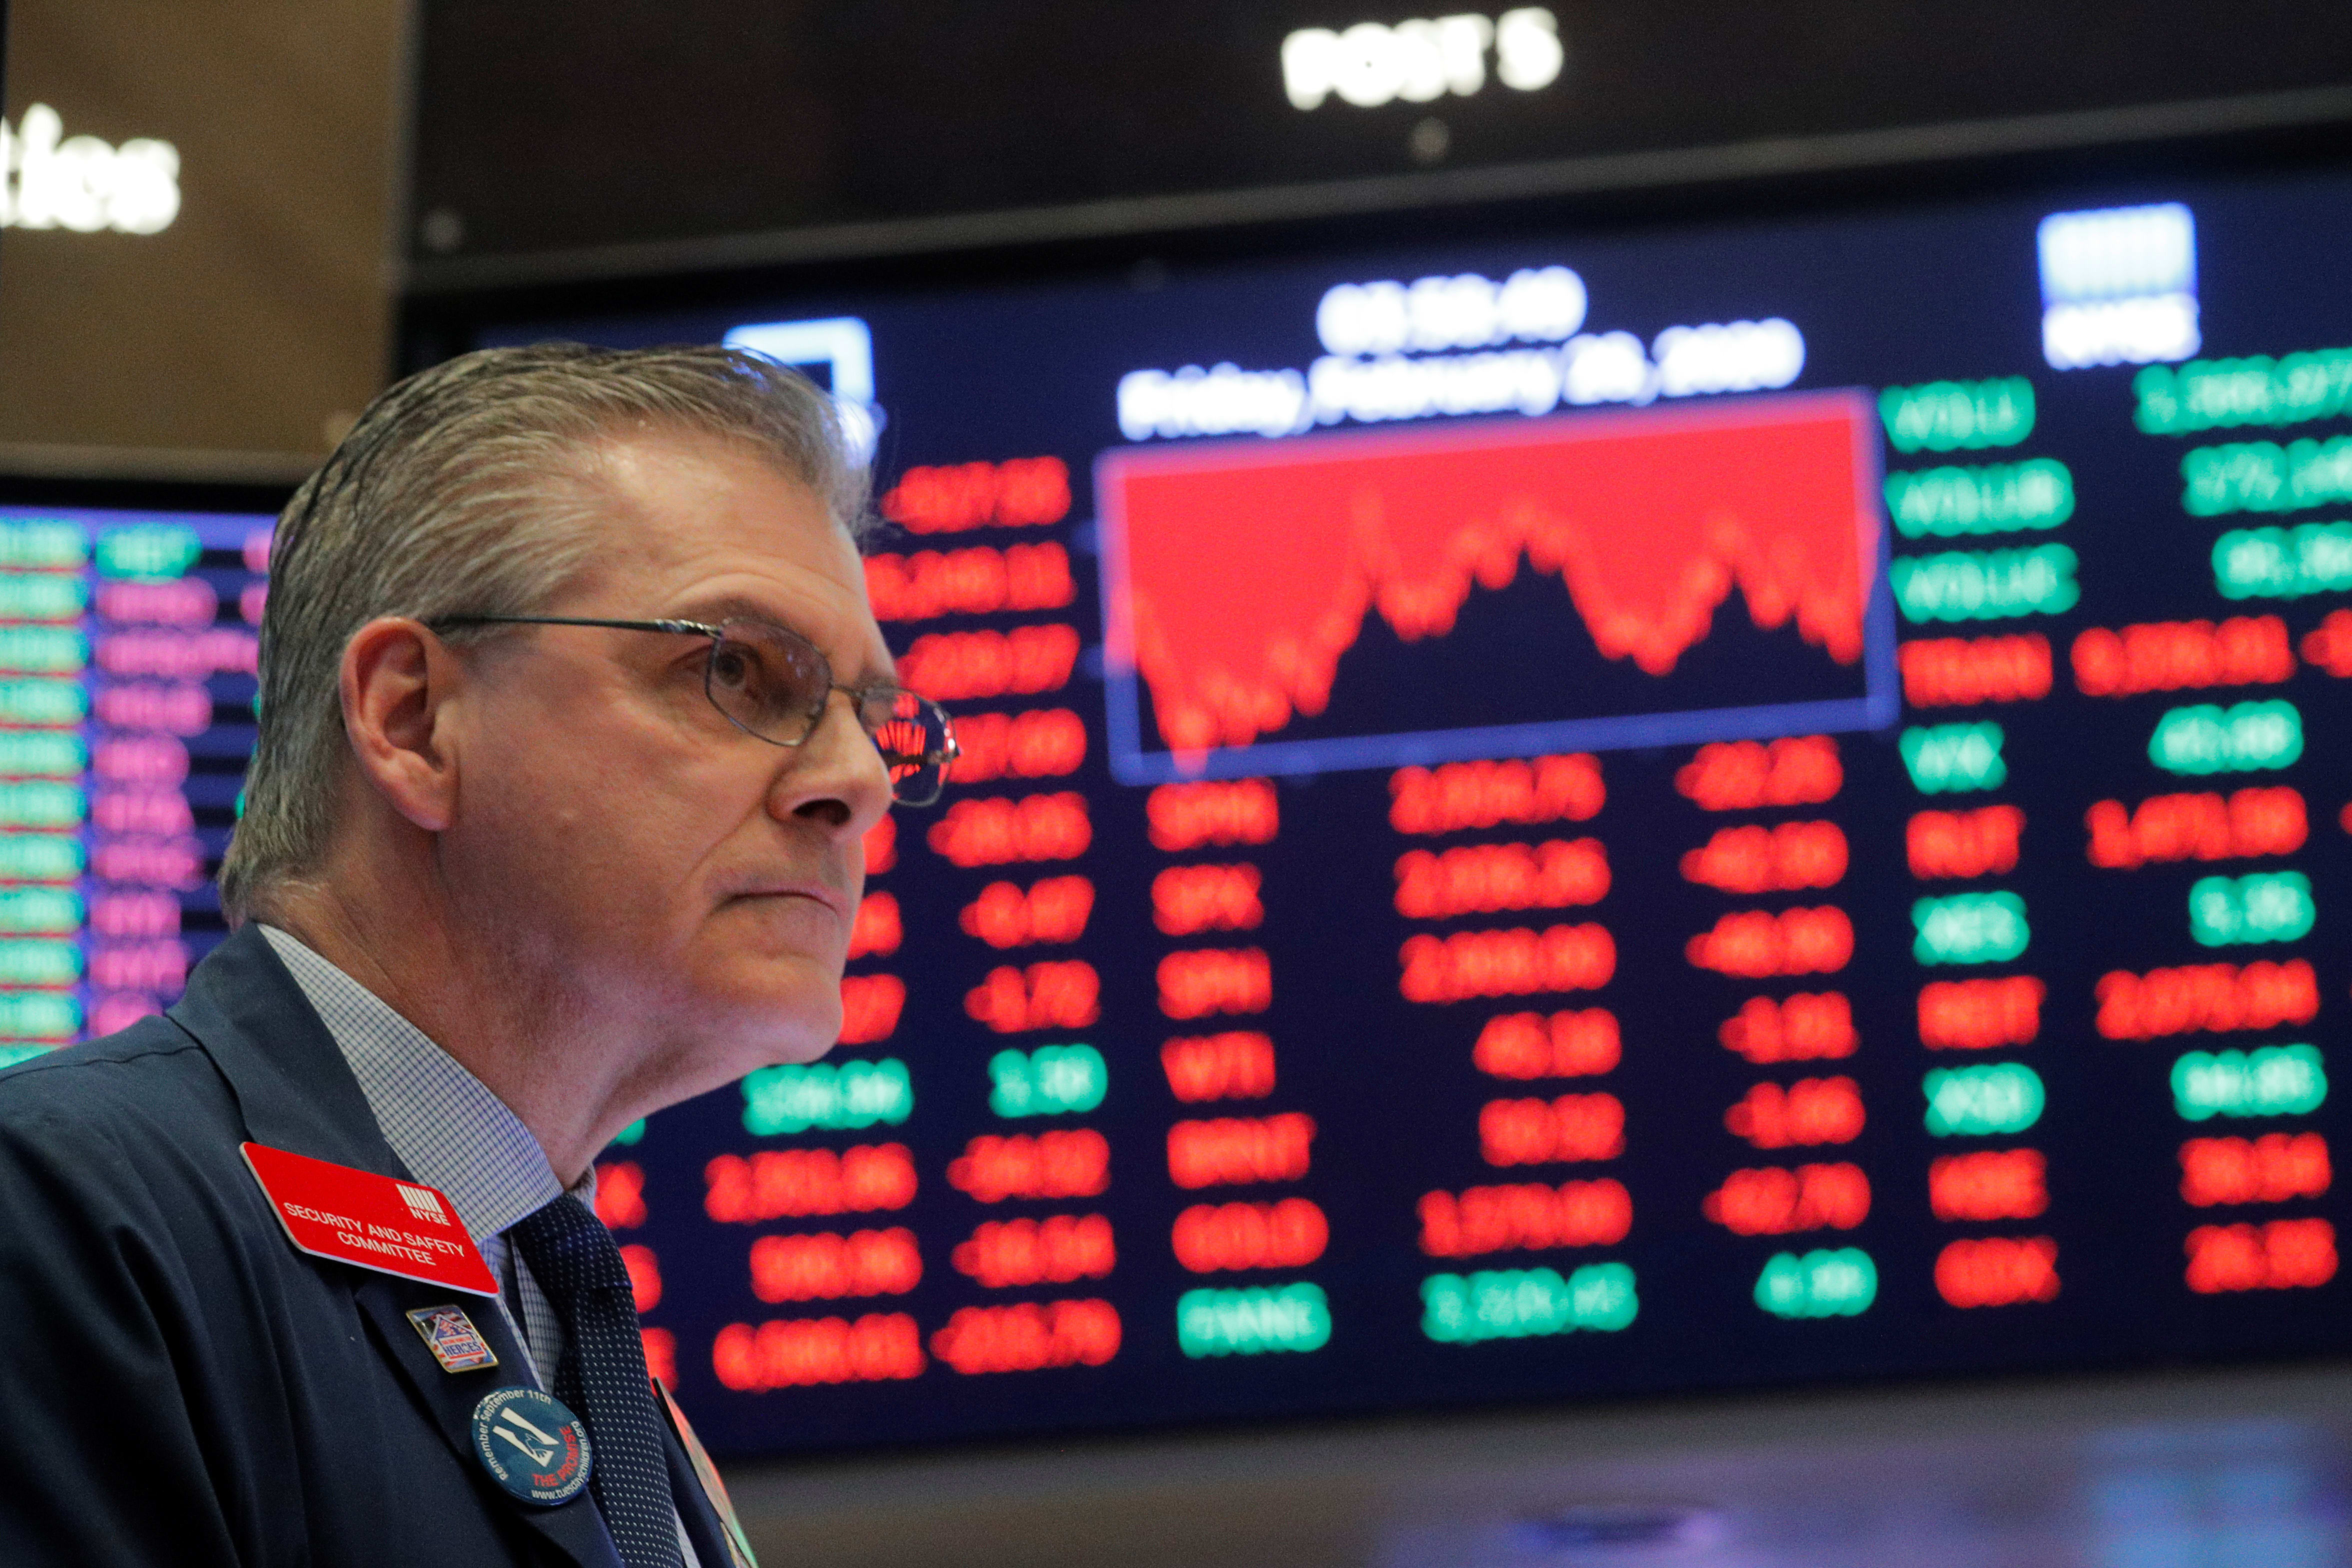 Stocks making the biggest moves midday: Norwegian Cruise Line, DXC Technology, Citigroup & more